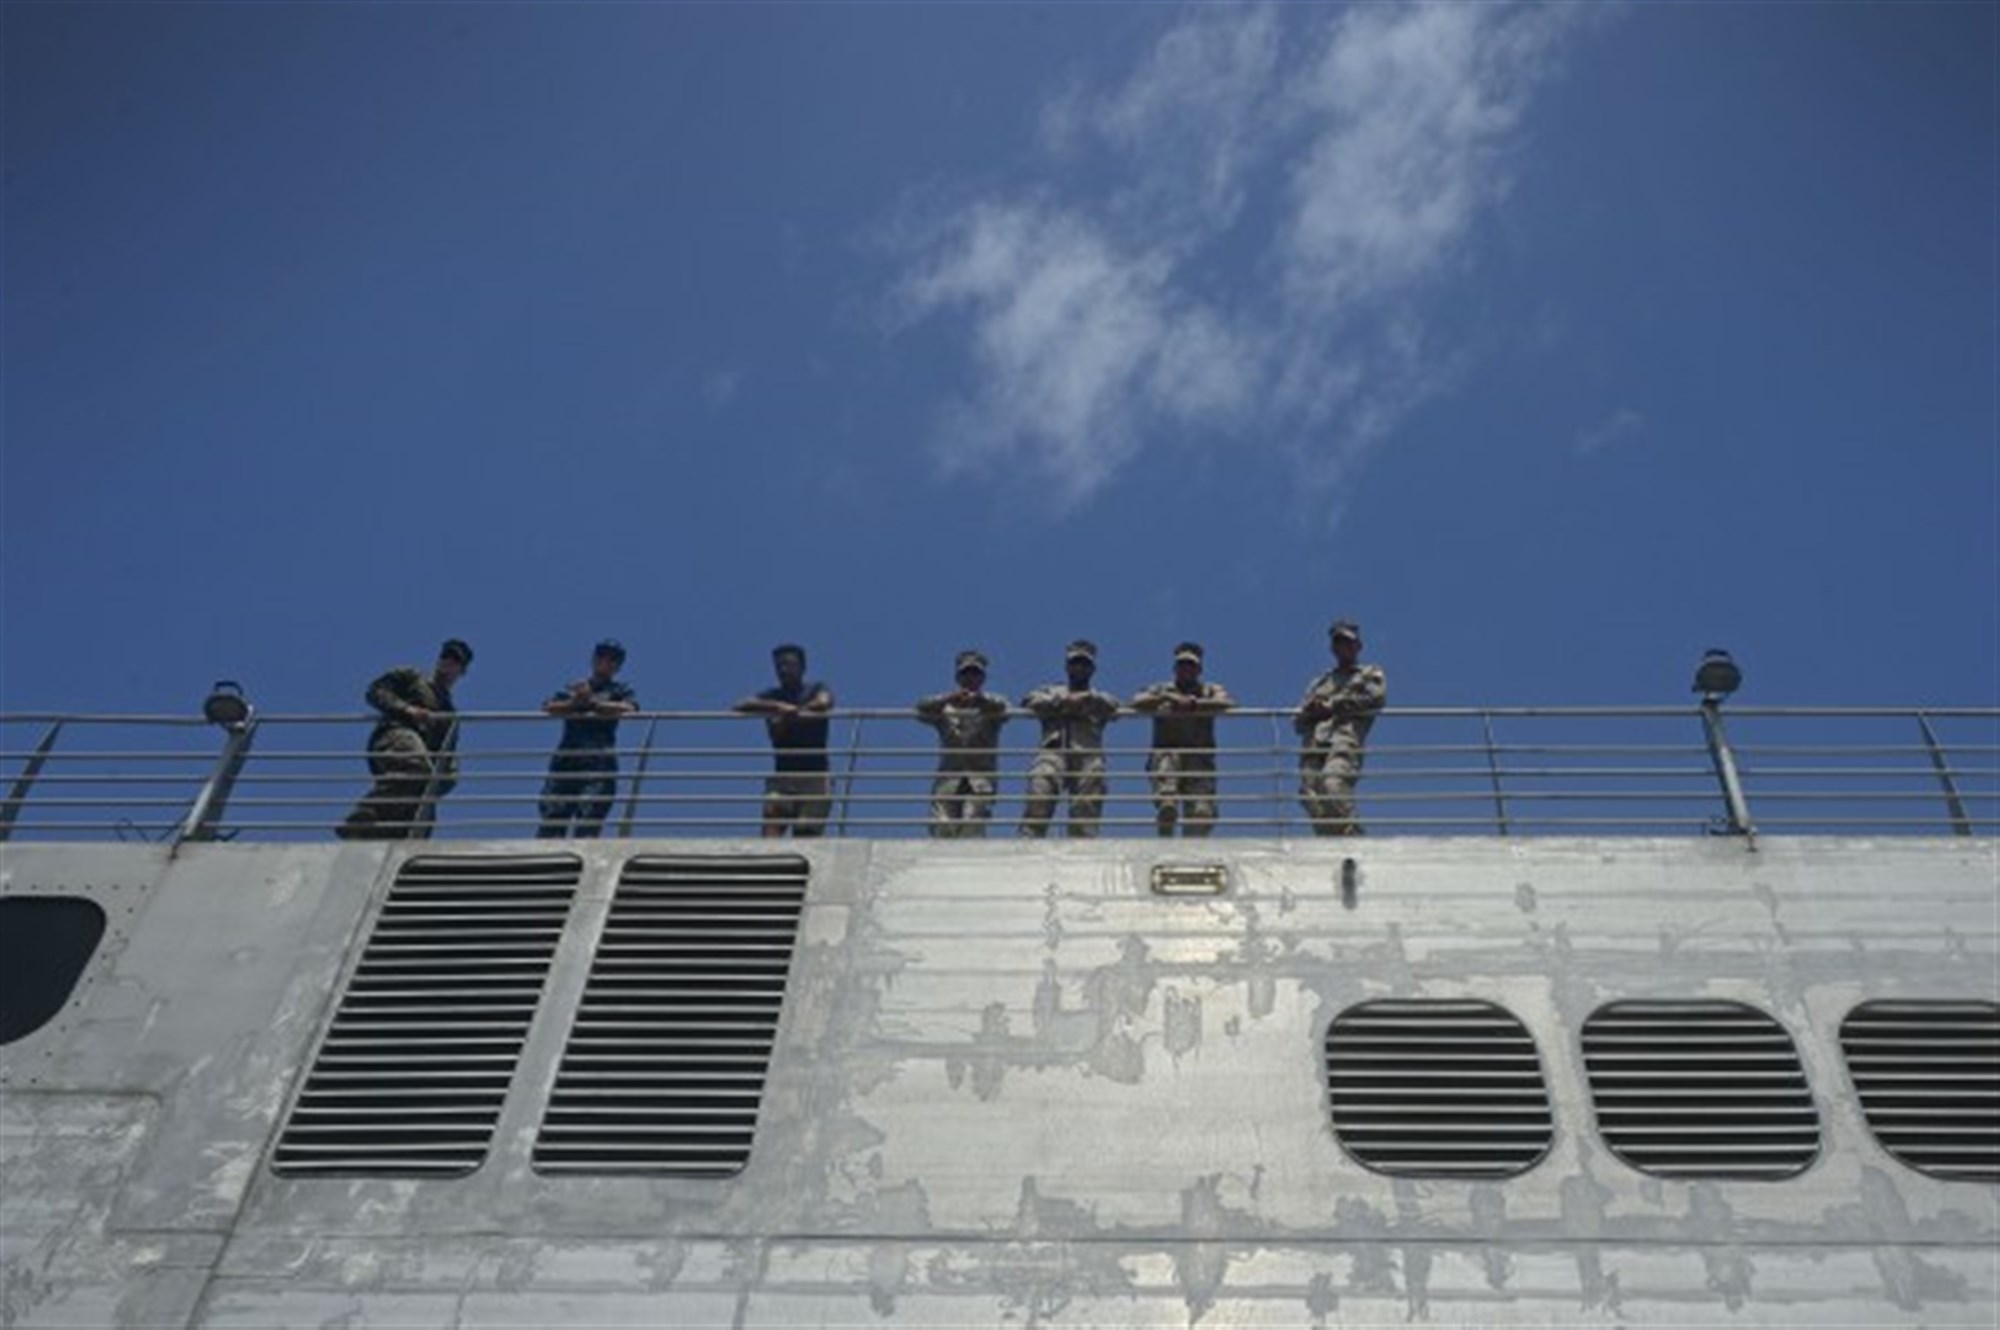 150406-N-RB579-019 PORT GENTIL, Gabon (April 6, 2015) Sailors stand on the flight deck of the Military Sealift Command's joint high-speed vessel USNS Spearhead (JHSV 1) after the ship pulls into Port Gentil, Gabon April 6, 2015. Spearhead is on a scheduled deployment to the U.S. 6th Fleet area of operations in support of the international collaborative capacity-building program Africa Partnership Station. (U.S. Navy photo by Mass Communication Specialist 1st Class Joshua Davies/Released)